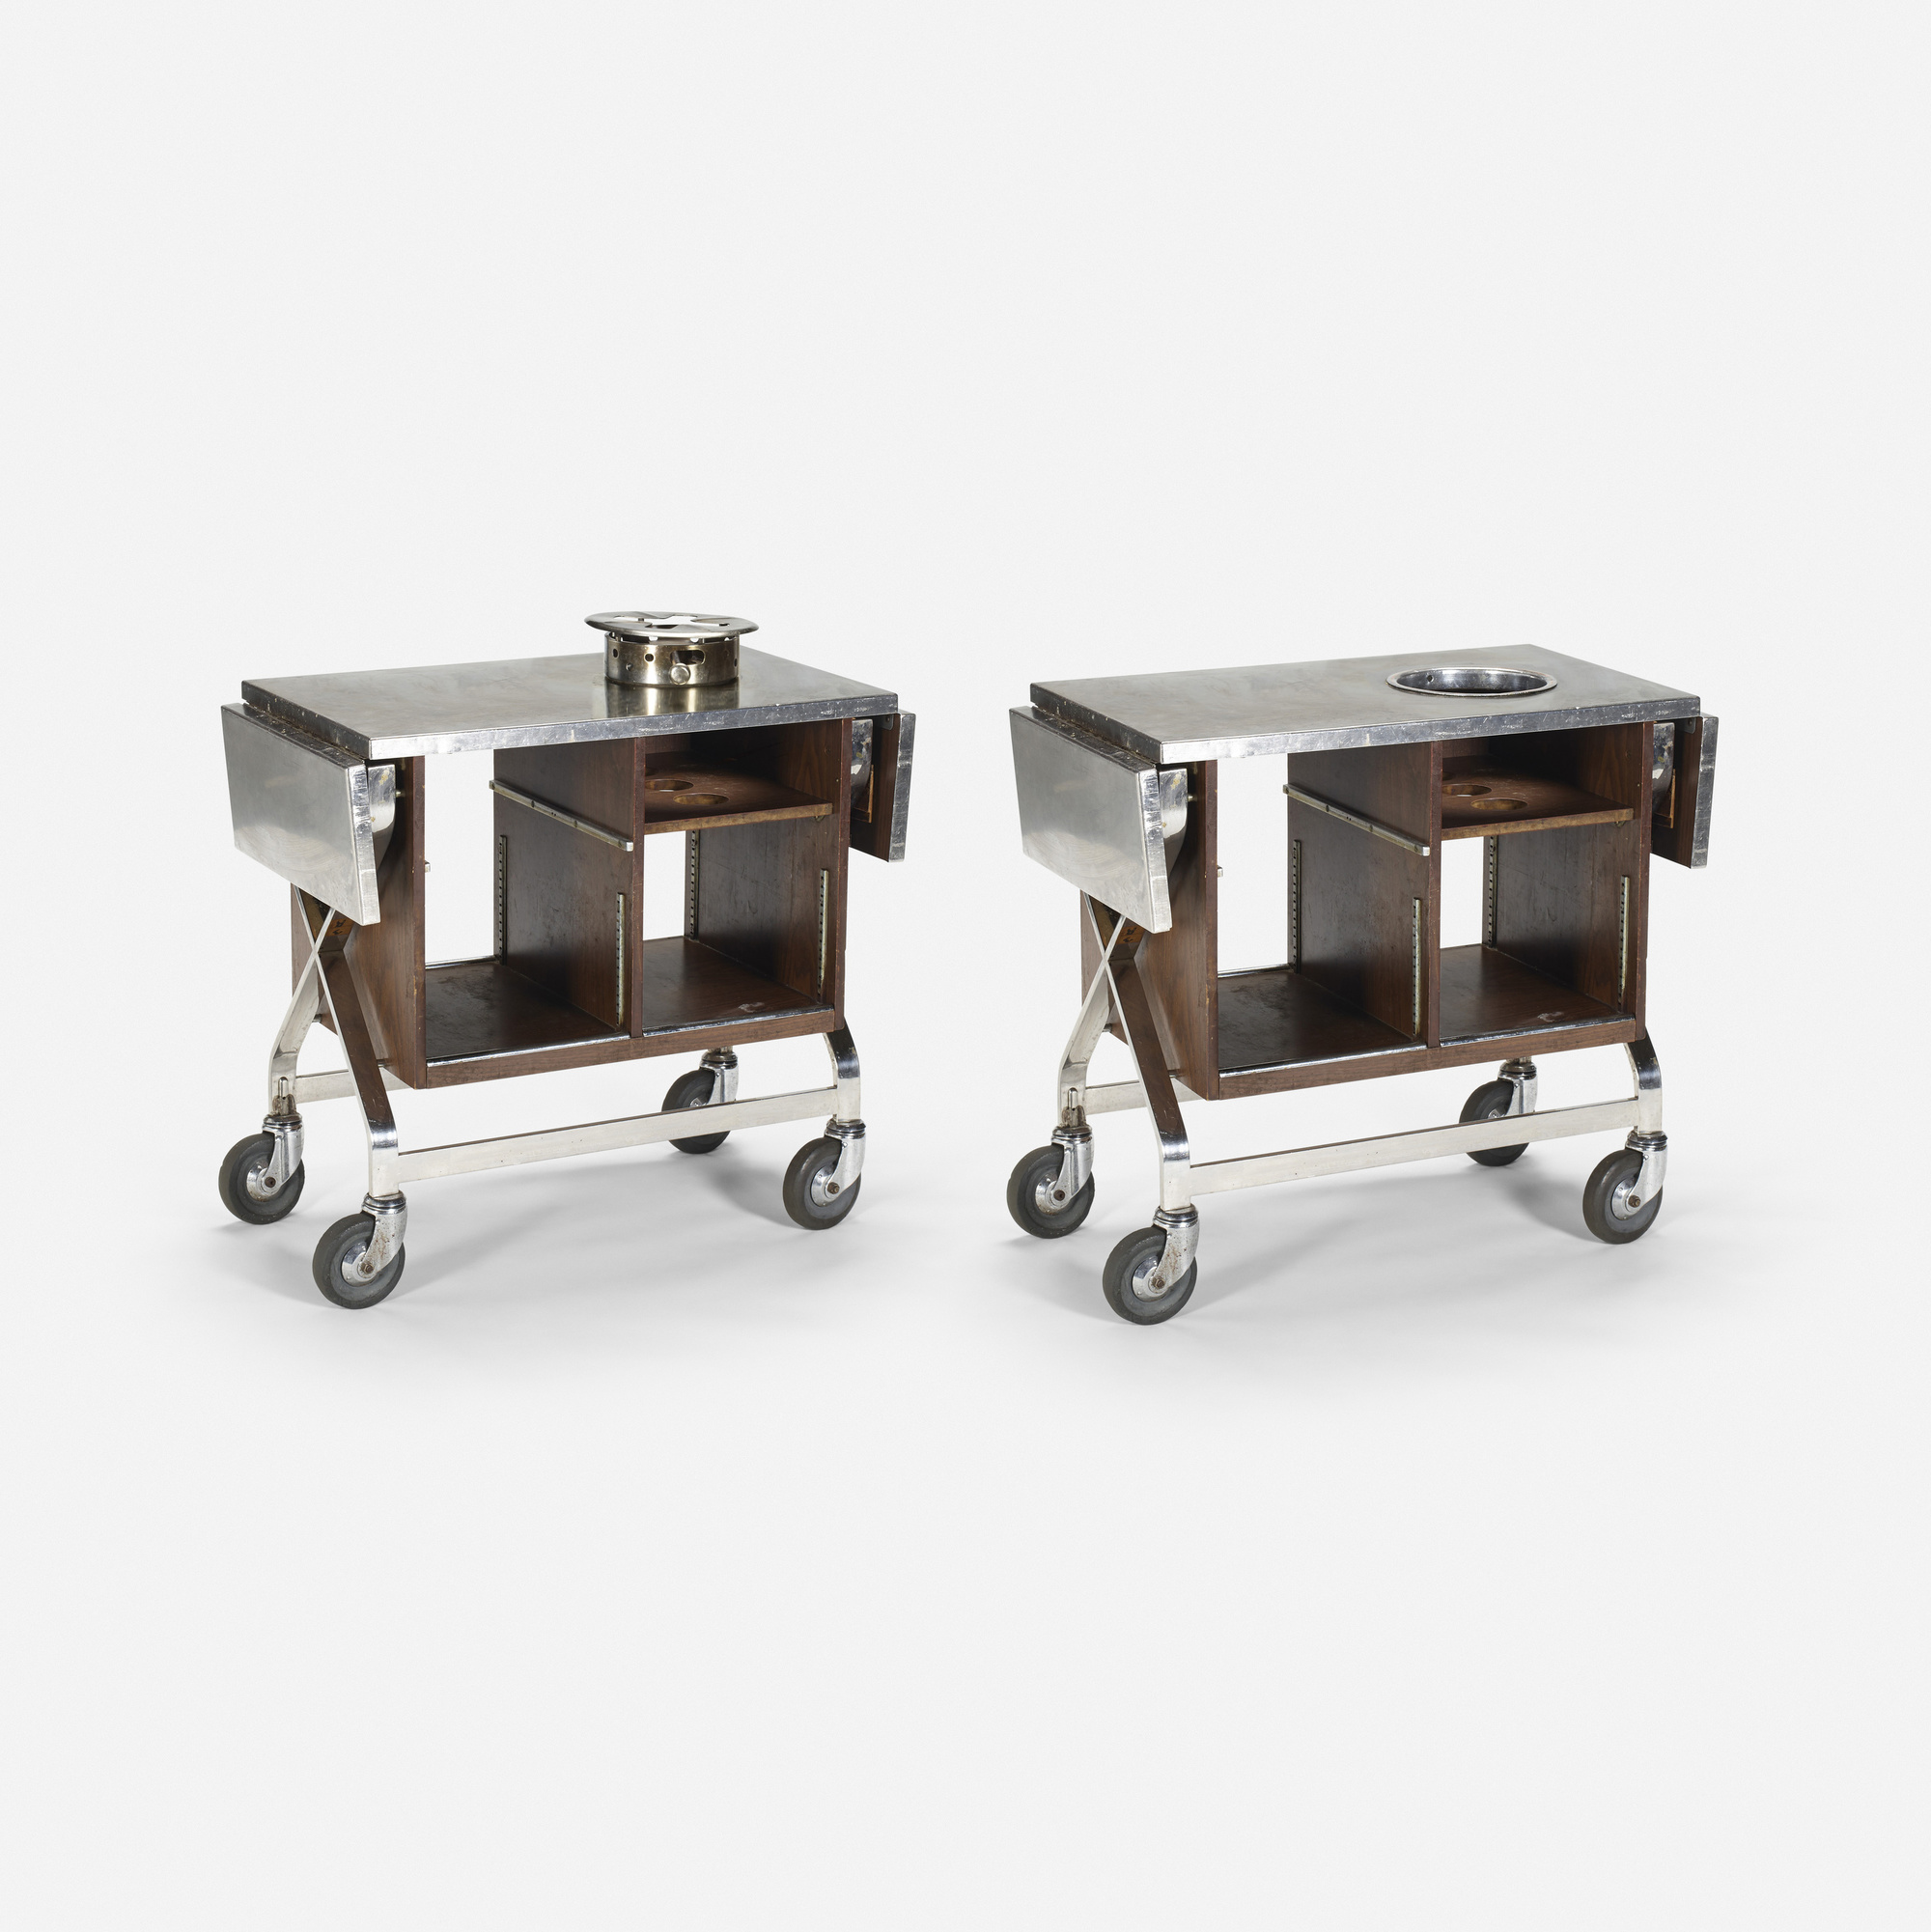 551: Garth and Ada Louise Huxtable / Serving carts from The Four Seasons, pair (1 of 1)